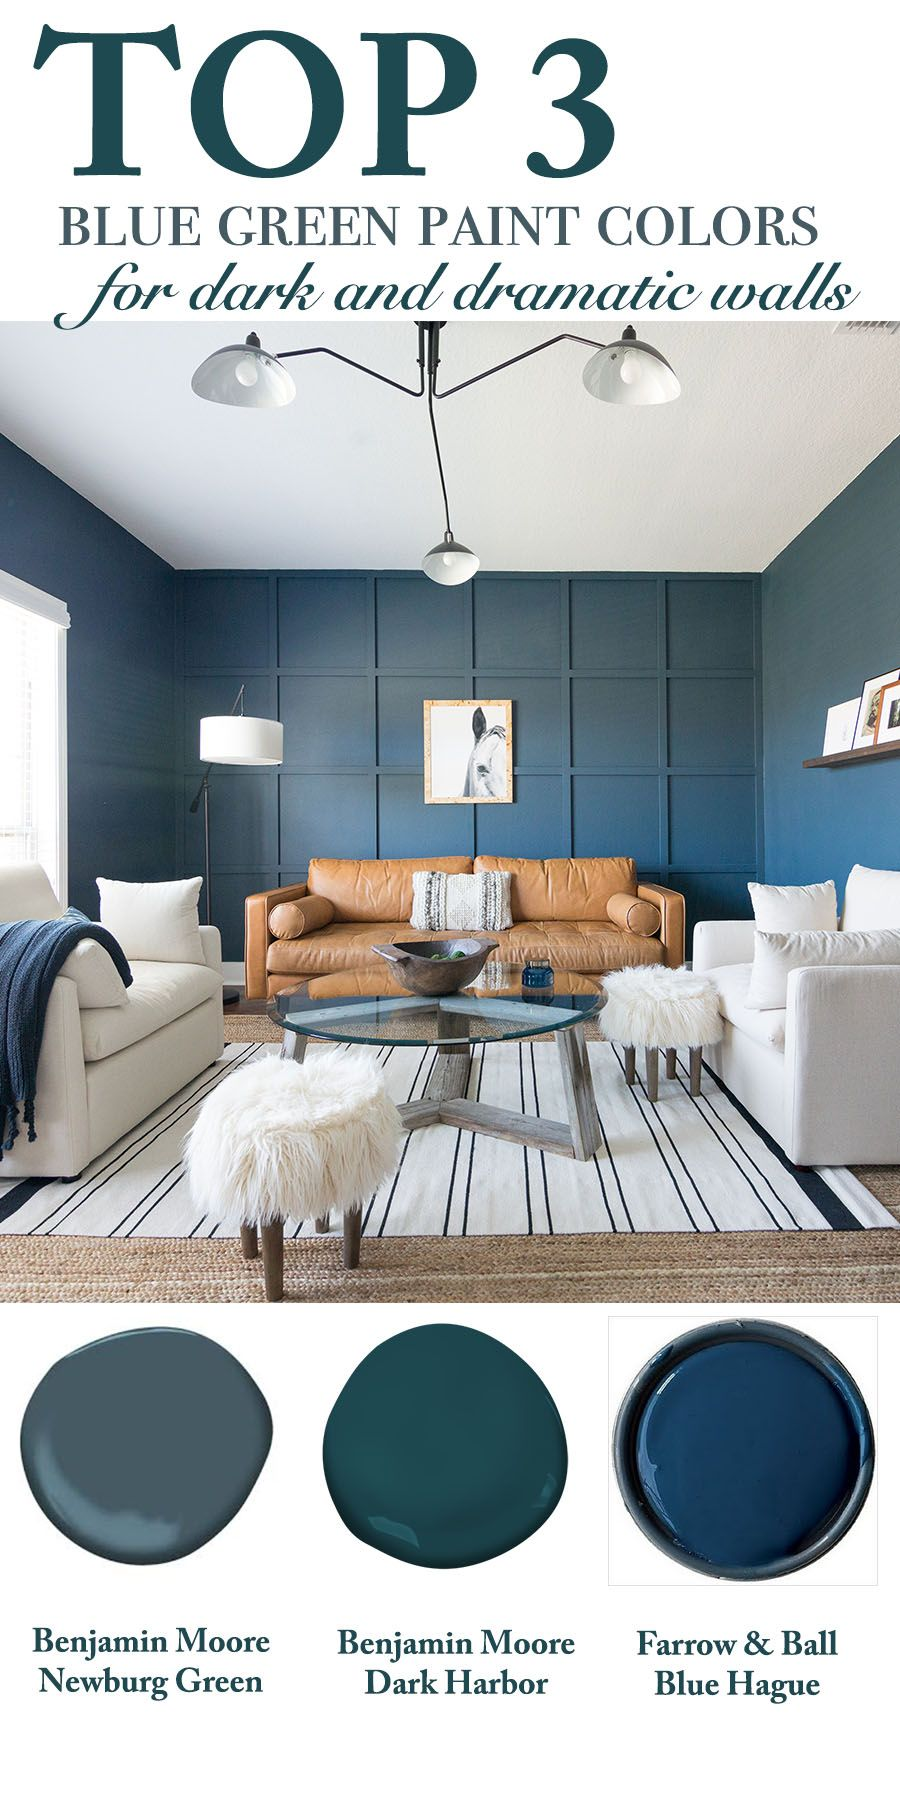 Top 3 Blue Green Paint Colors For Dark And Dramatic Walls Cc And Mike Blog